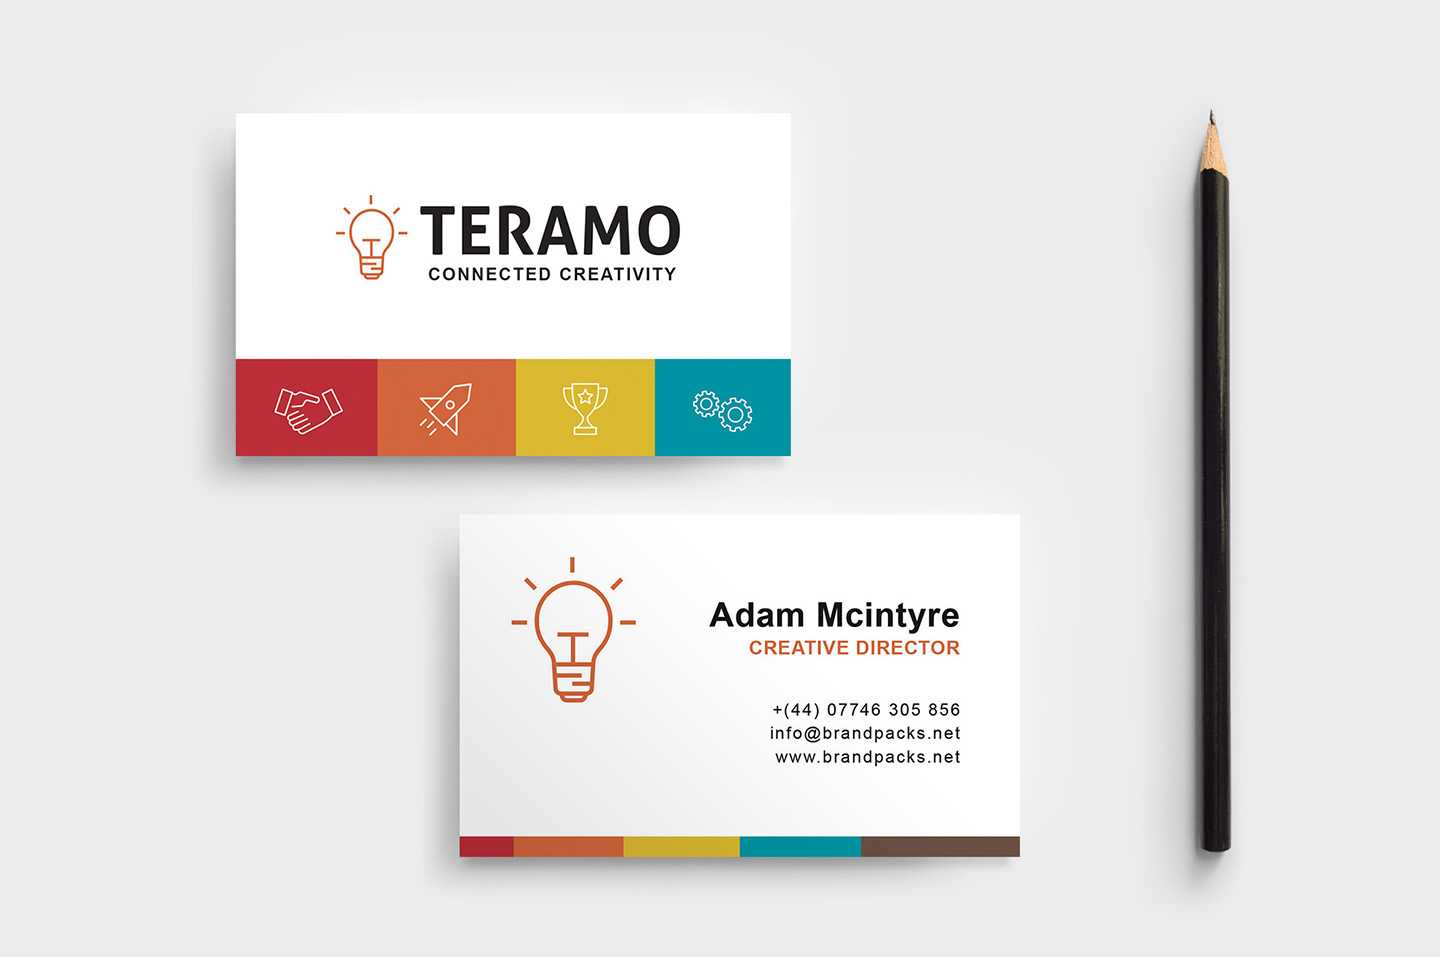 Free Business Card Template In Psd, Ai & Vector - Brandpacks With Regard To Professional Business Card Templates Free Download